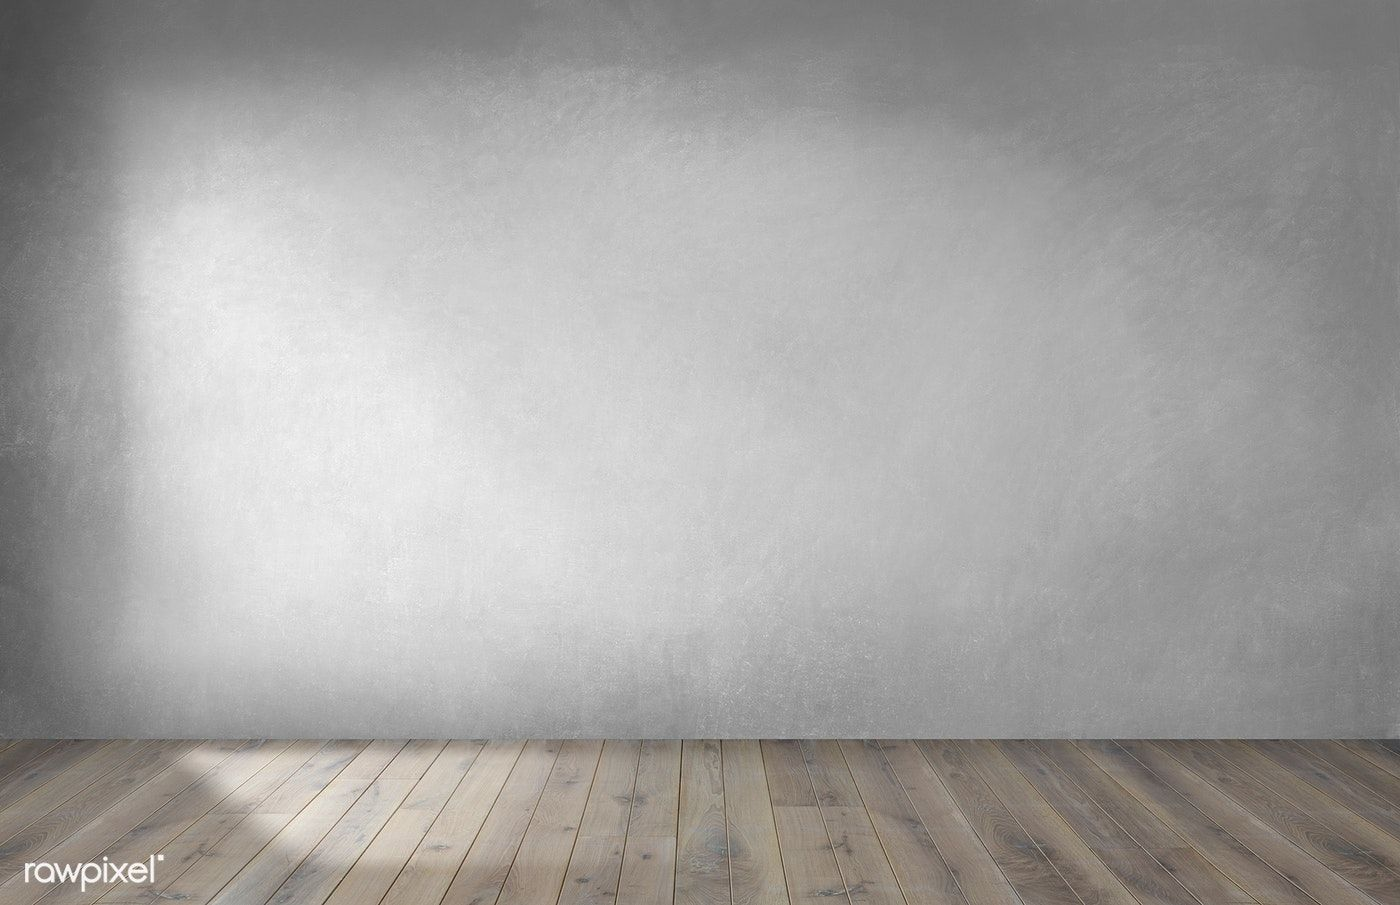 Download premium photo of Gray wall in an empty room with